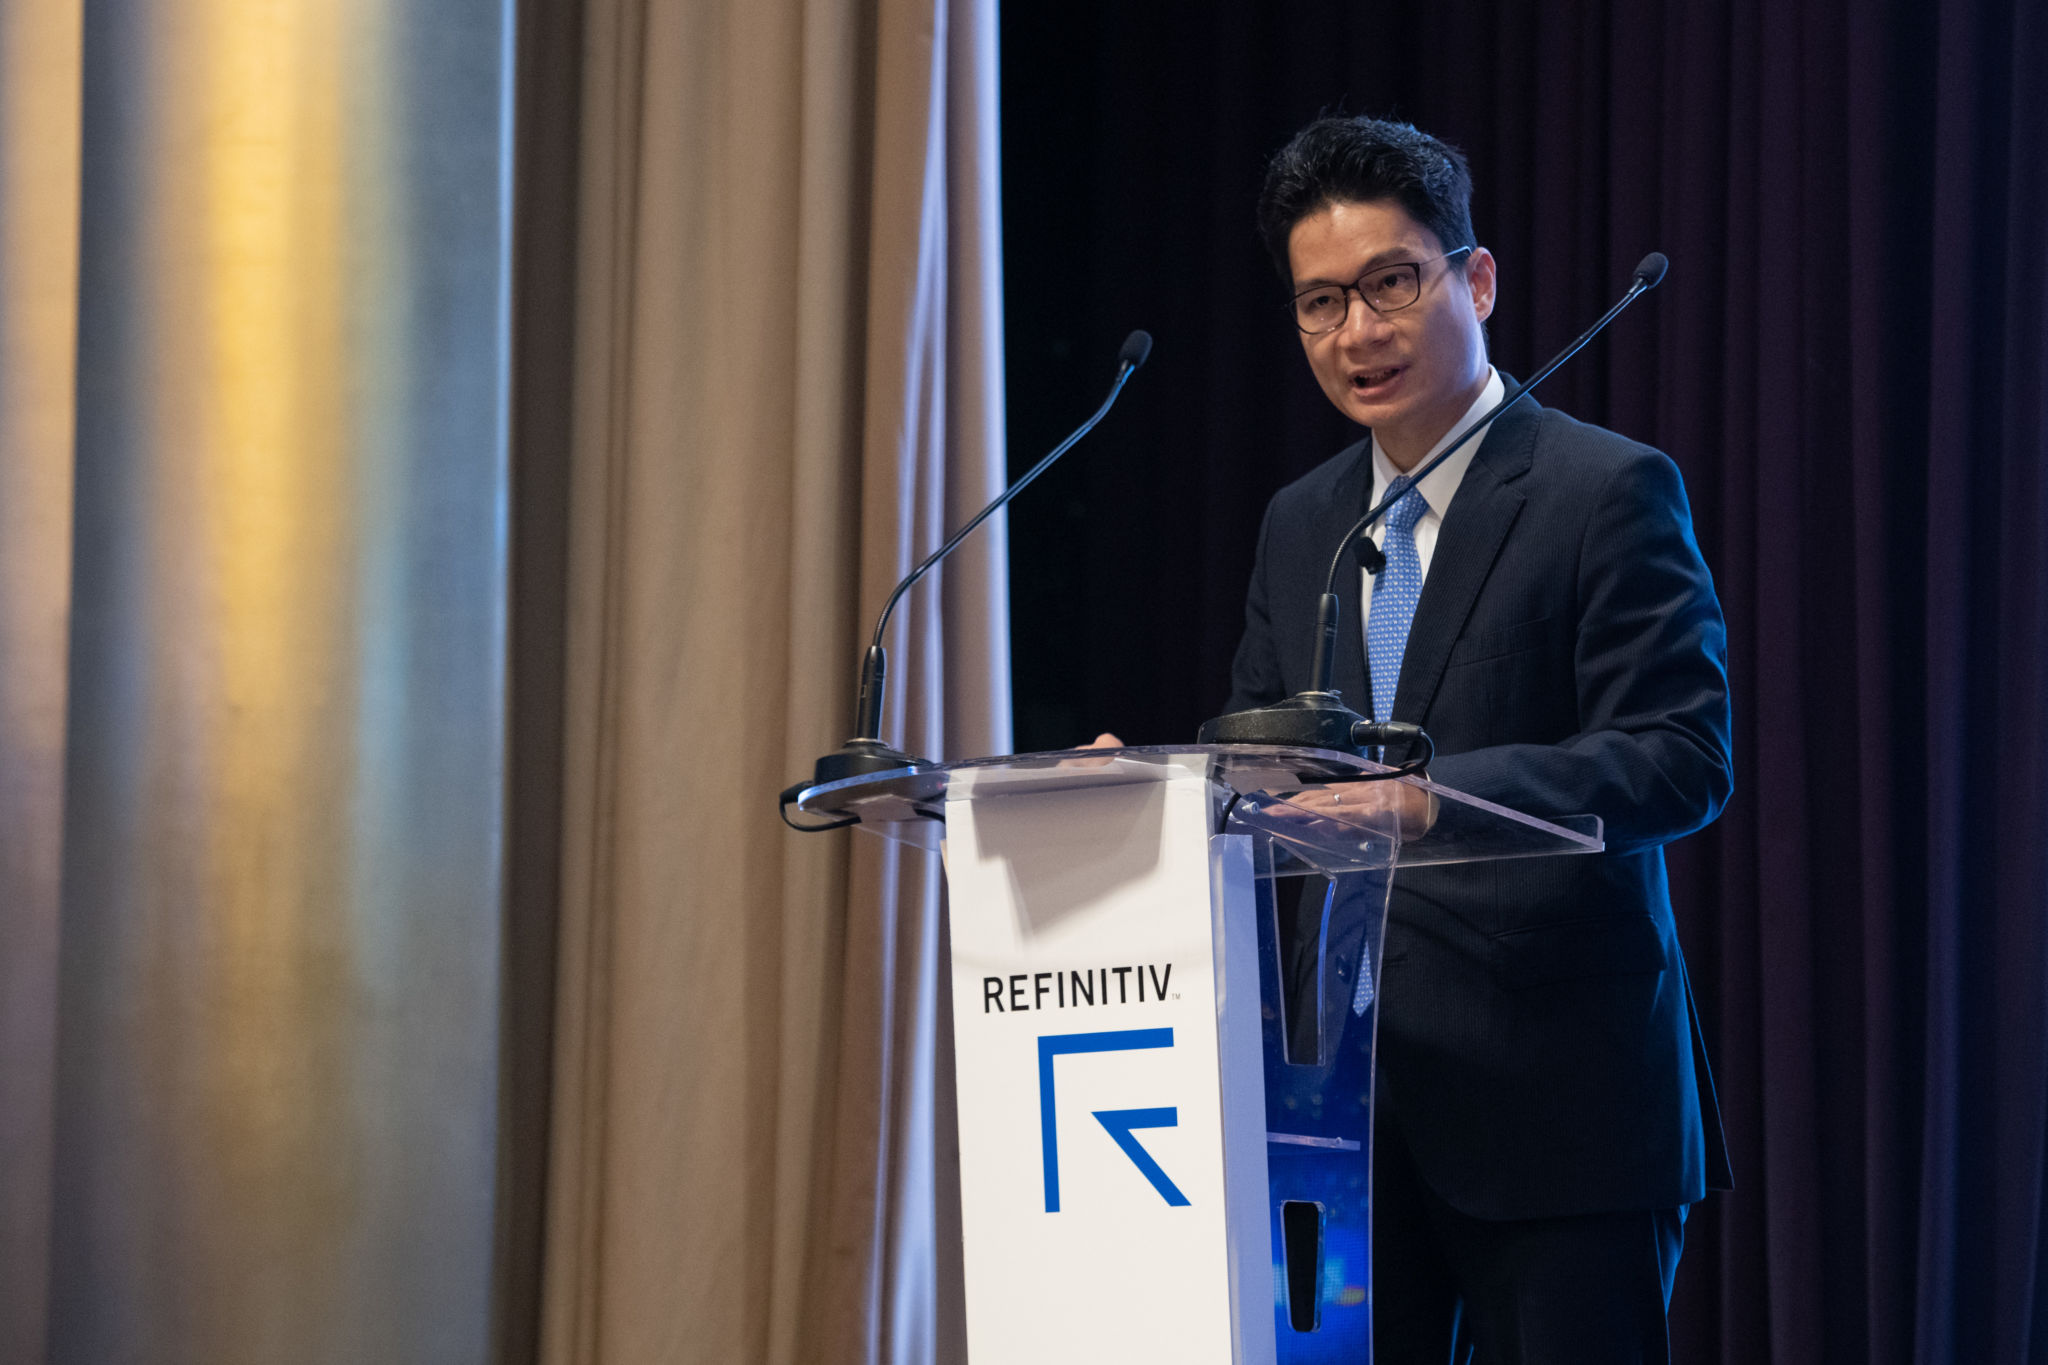 Joseph H. L. Chan, JP, Under Secretary for Financial Services and the Treasury, HKSAR, opens Day 2 of the 2018 Refinitiv Pan Asian Regulatory Summit